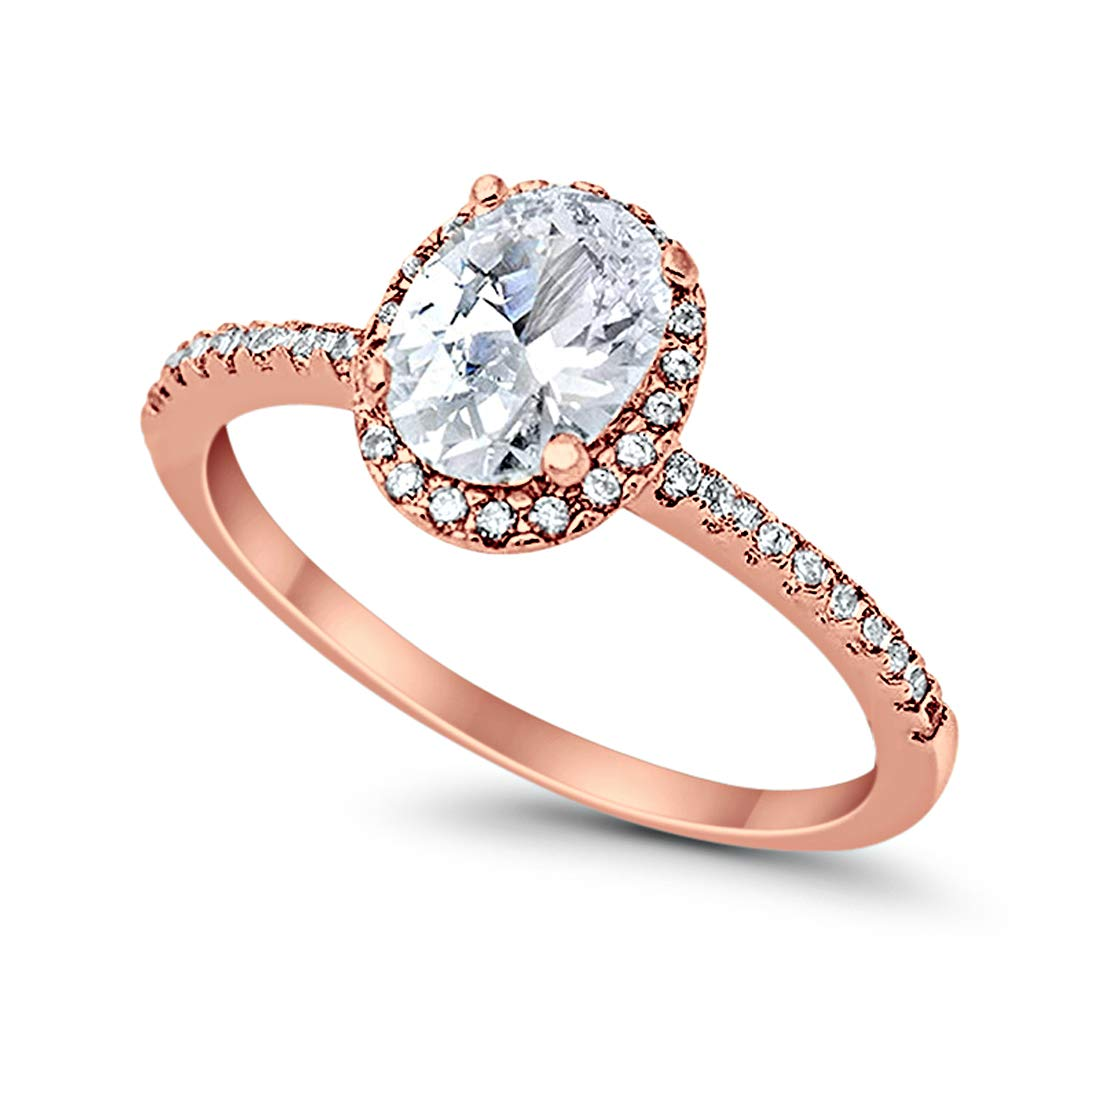 Accent Halo Wedding Promise Ring Oval Cut Cubic Zirconia Round CZ Rose Tone Plated 925 Sterling Silver, Size-5